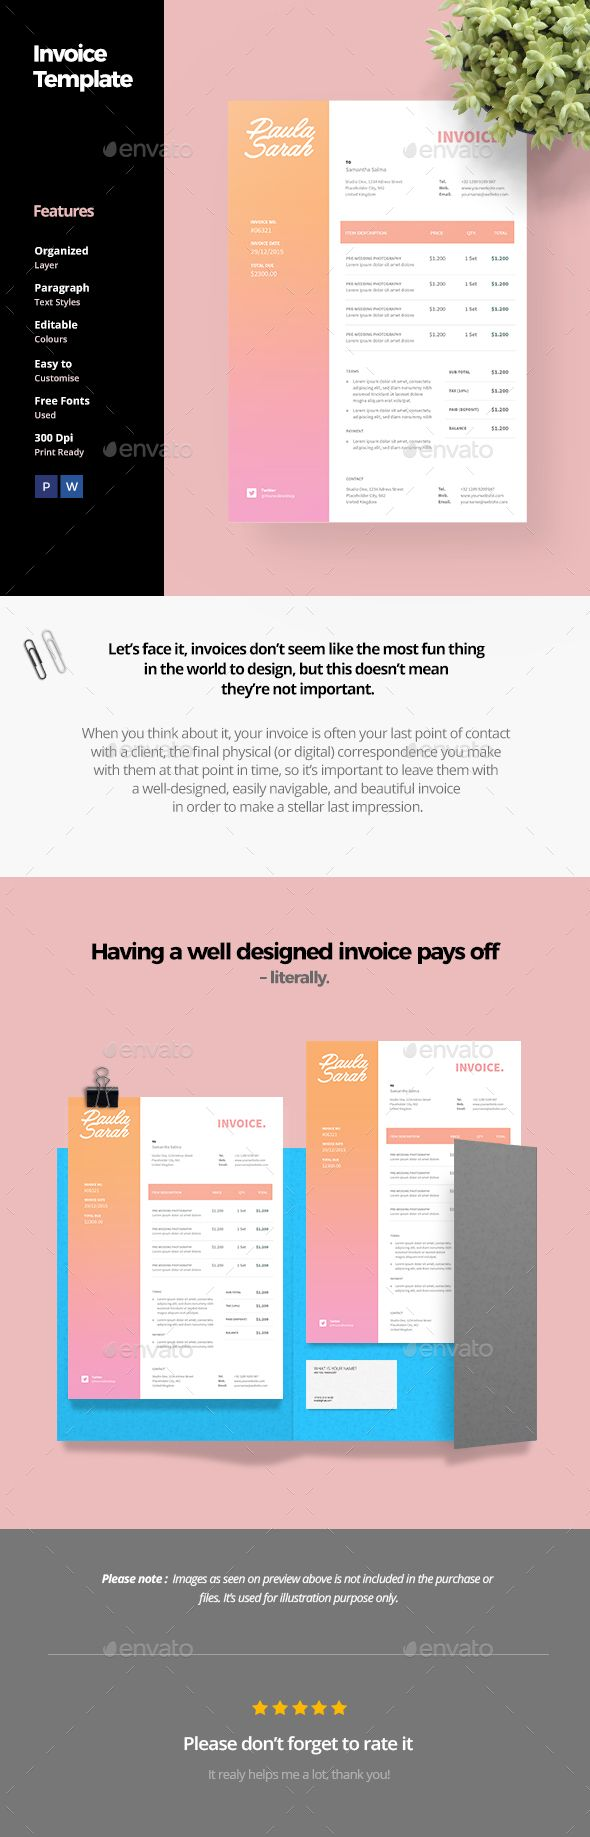 Invoice Template by AnabellaHope Clean Invoice Template Clean and modern invoice template for your business. FeaturesPSD and MS Word 300 Dpi CMYK, Print Ready Sma